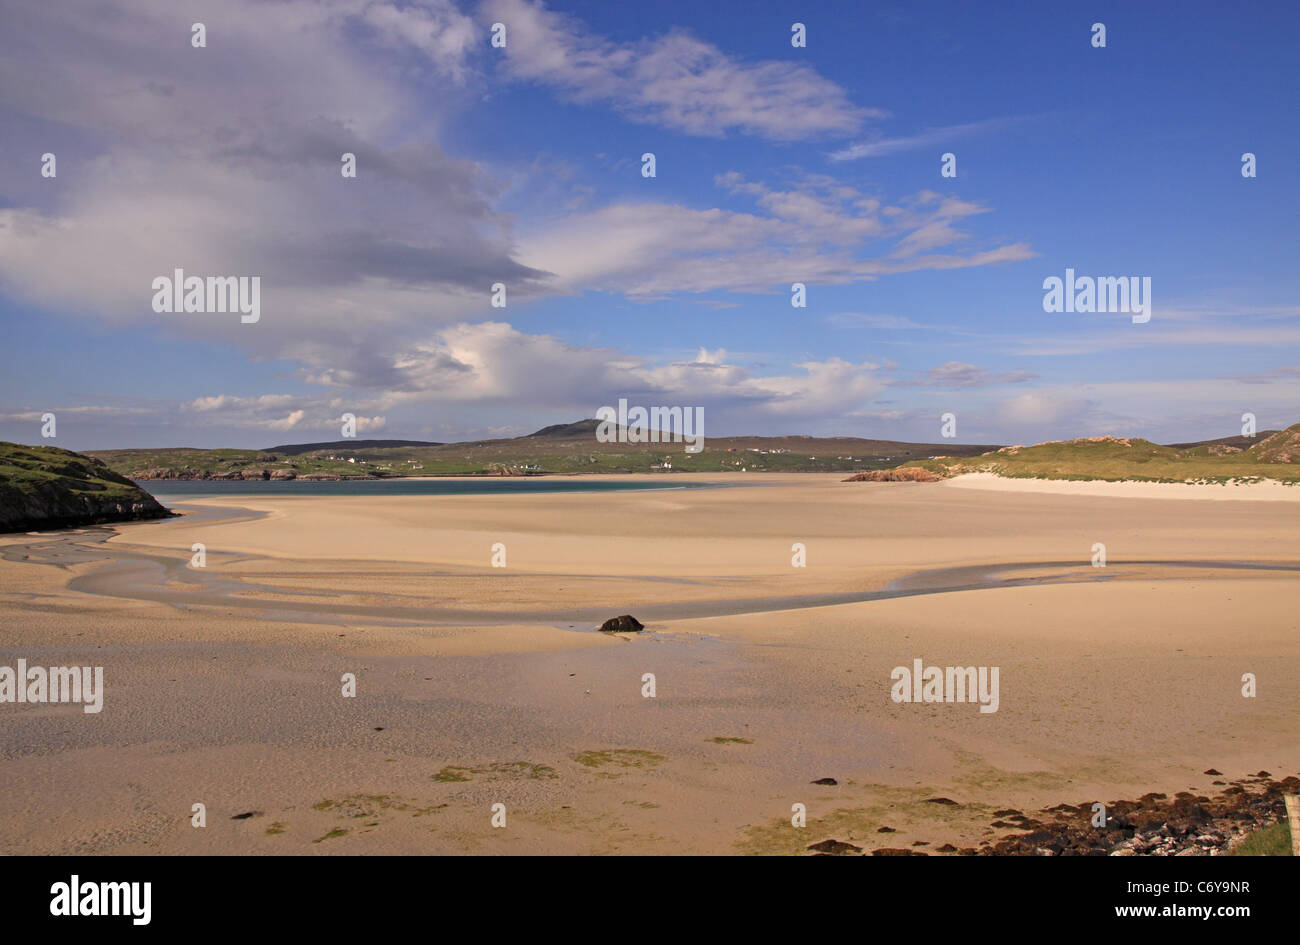 UK Scotland Outer Hebrides Isle of Lewis Uig Sands and Bay - Stock Image